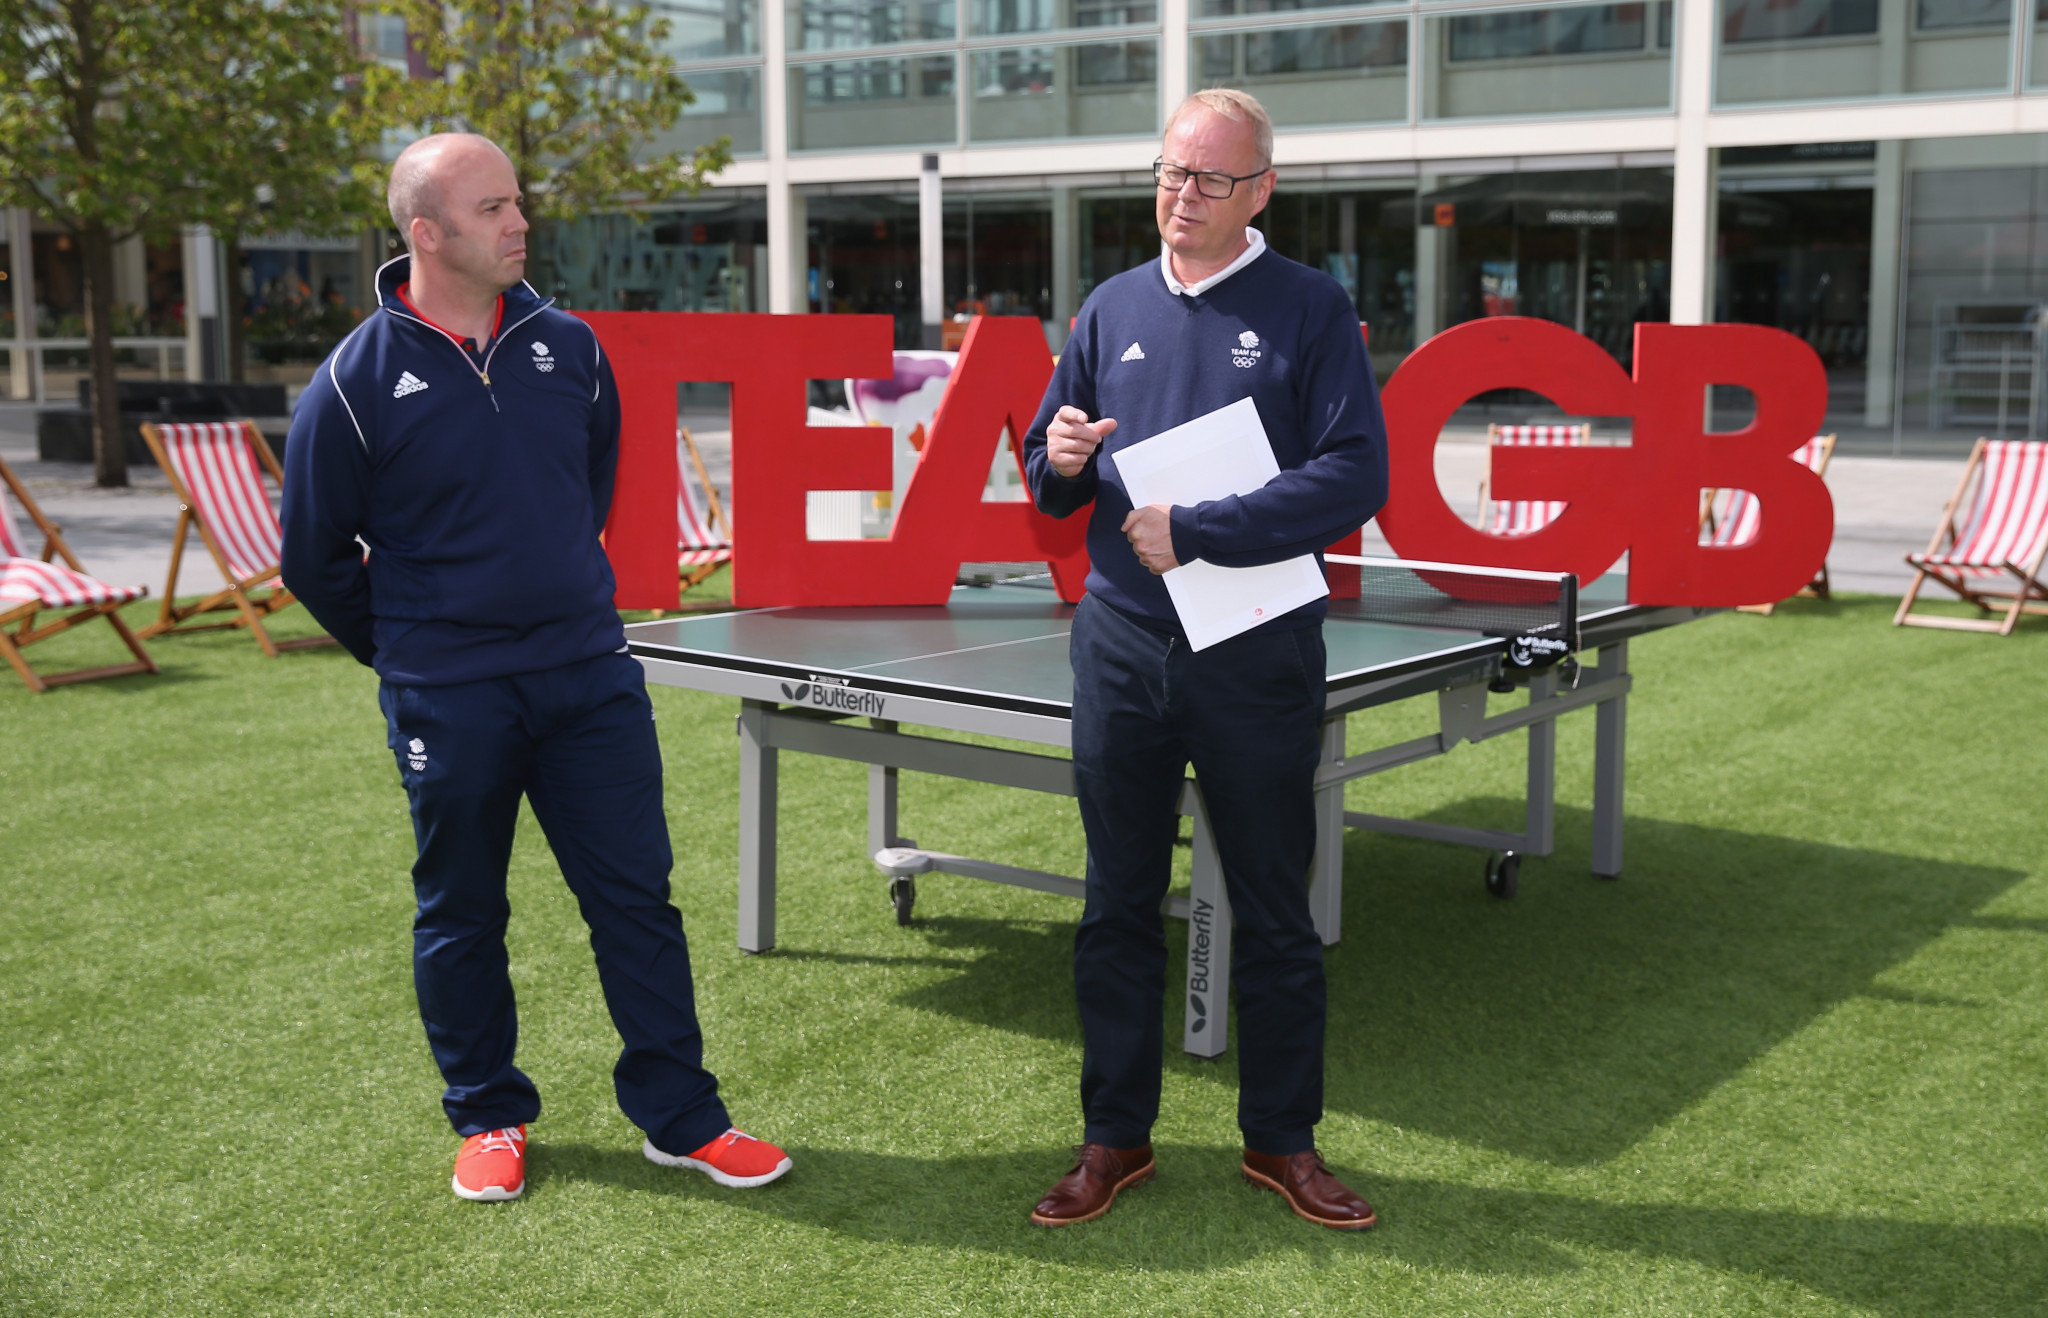 Mark England was Team GB's Chef de Mission for the 2016 Olympic Games in Rio de Janeiro and will fulfill the same role at Tokyo 2020 before turning his attention to Birmingham 2022 ©Getty Images